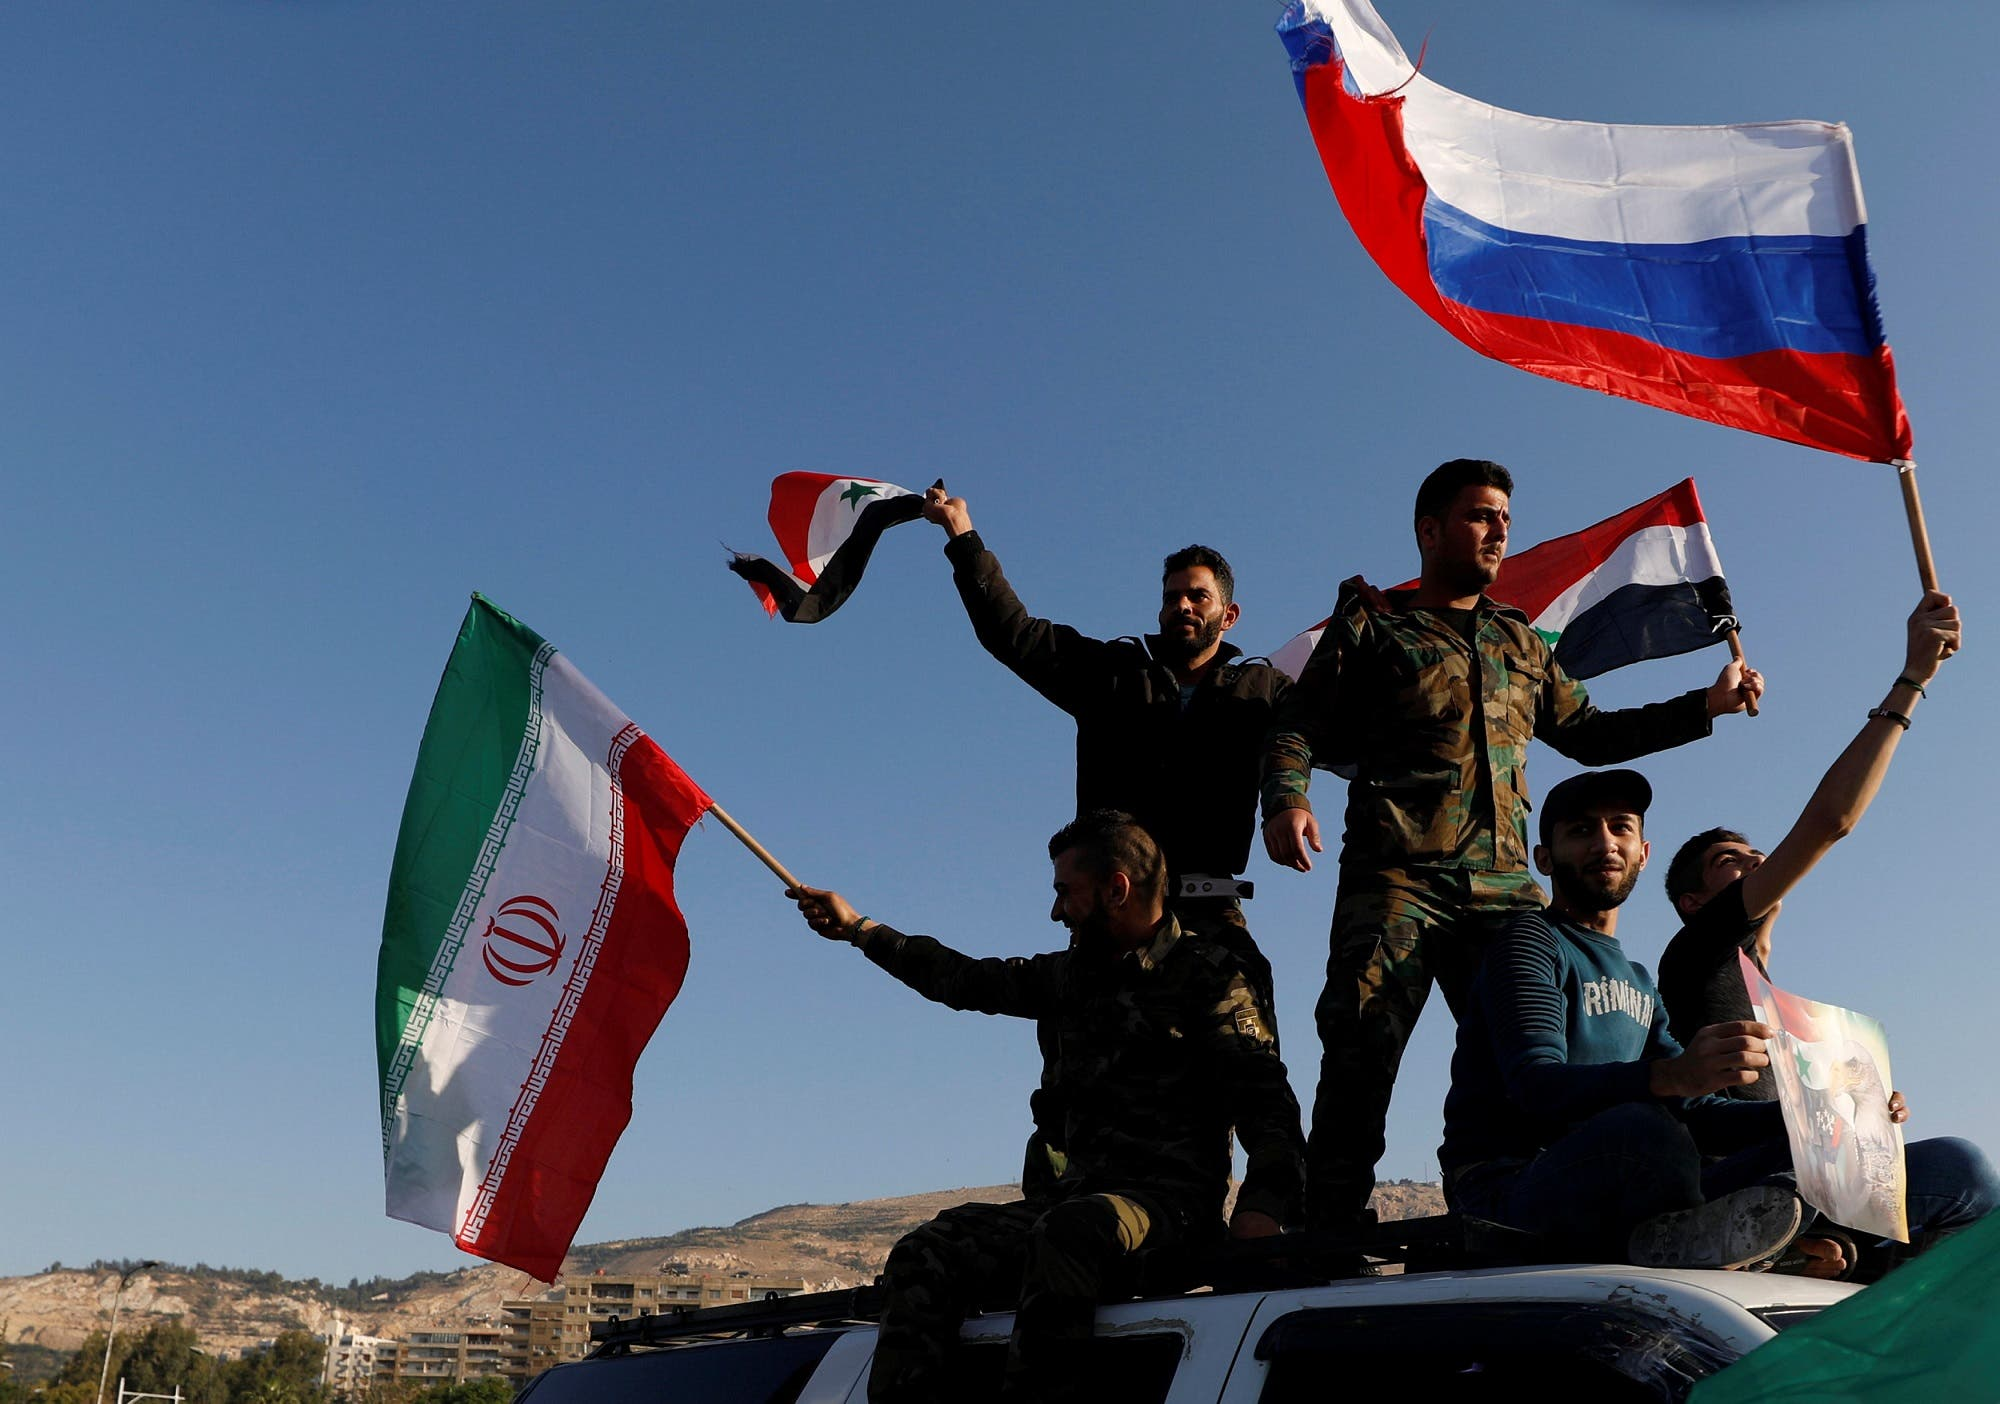 Syrians wave Iranian, Russian and Syrian flags during a protest against US-led air strikes in Damascus on April 14, 2018. (Reuters)